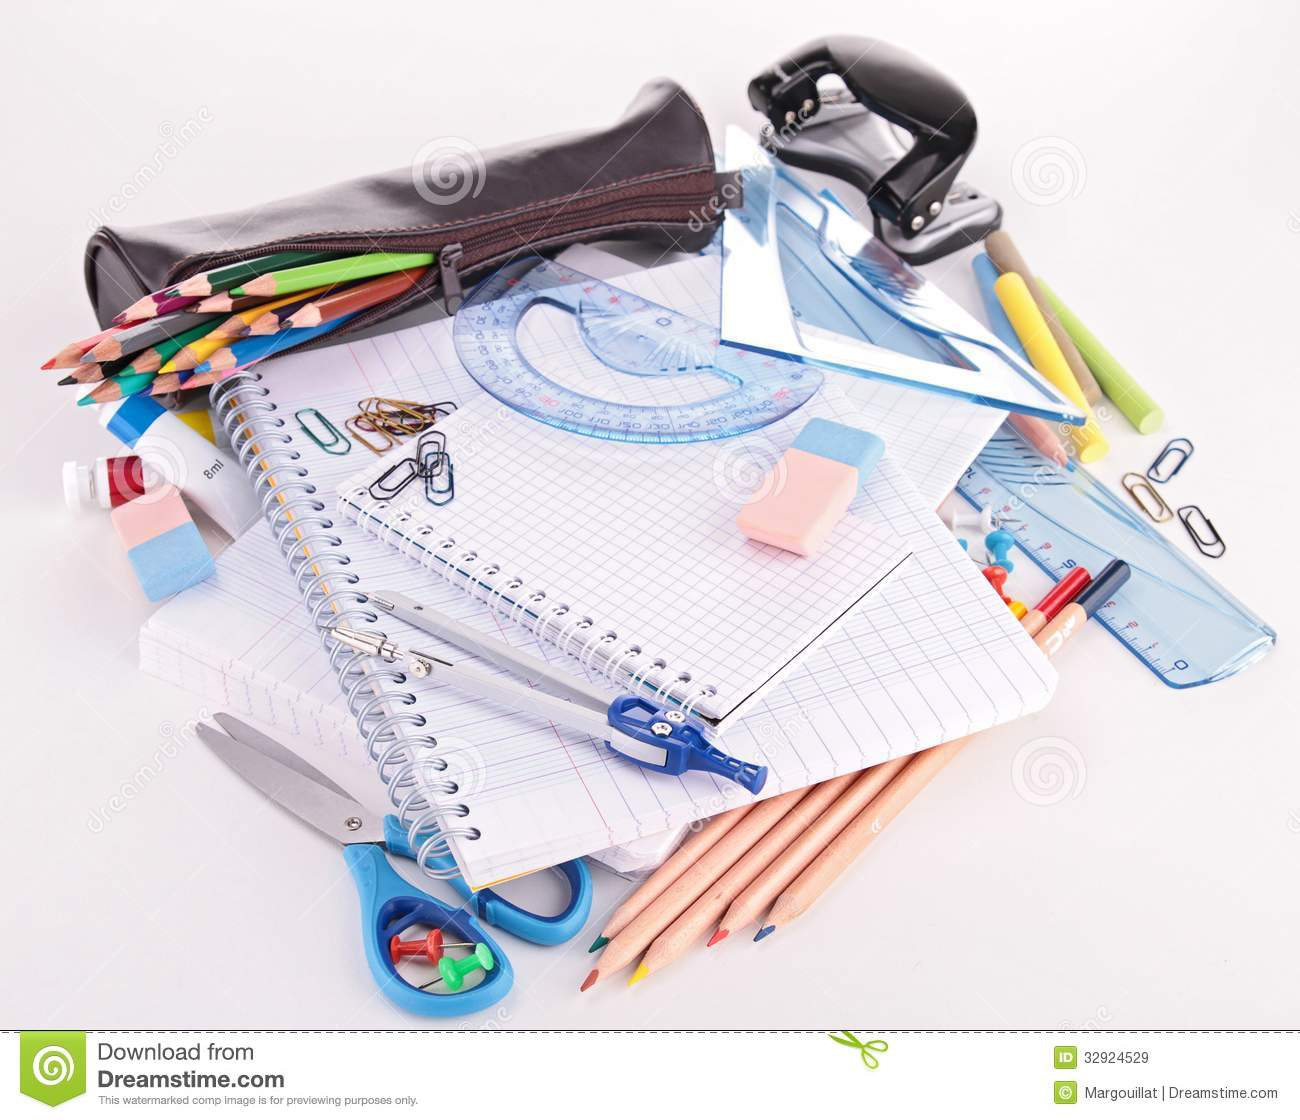 school or business supplies stock image